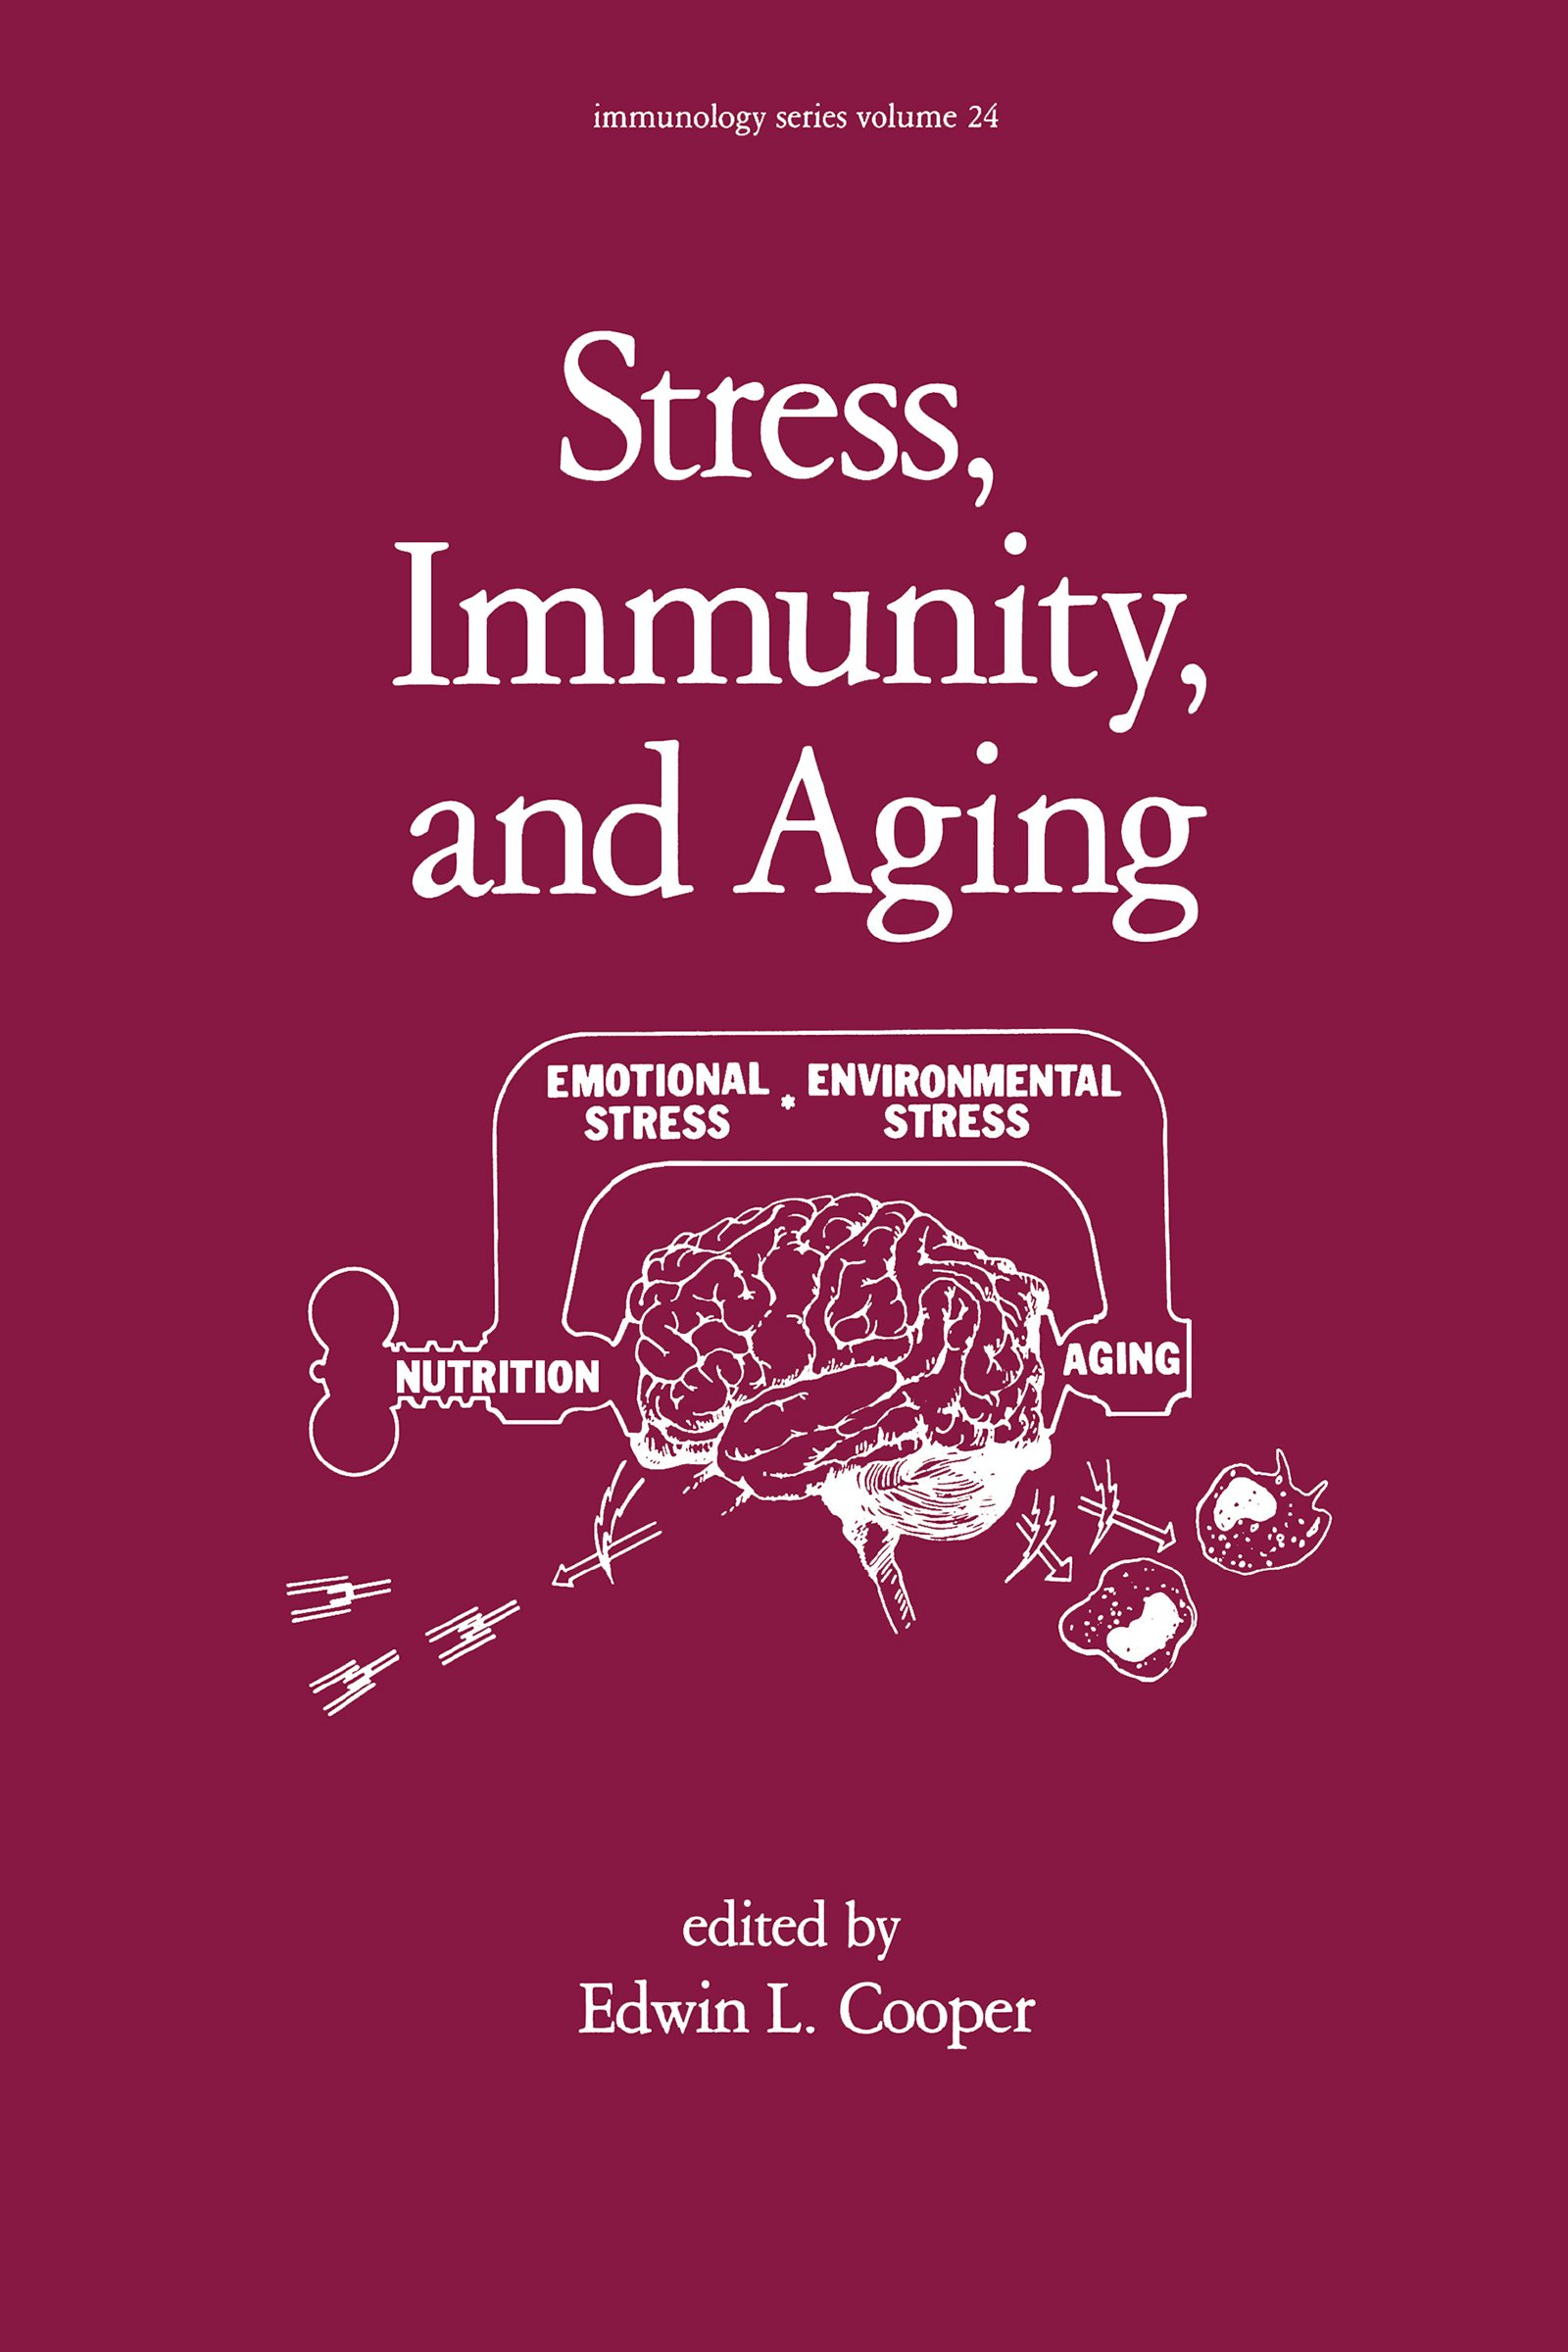 The Aging Lymphocyte, Stress, and Immunity